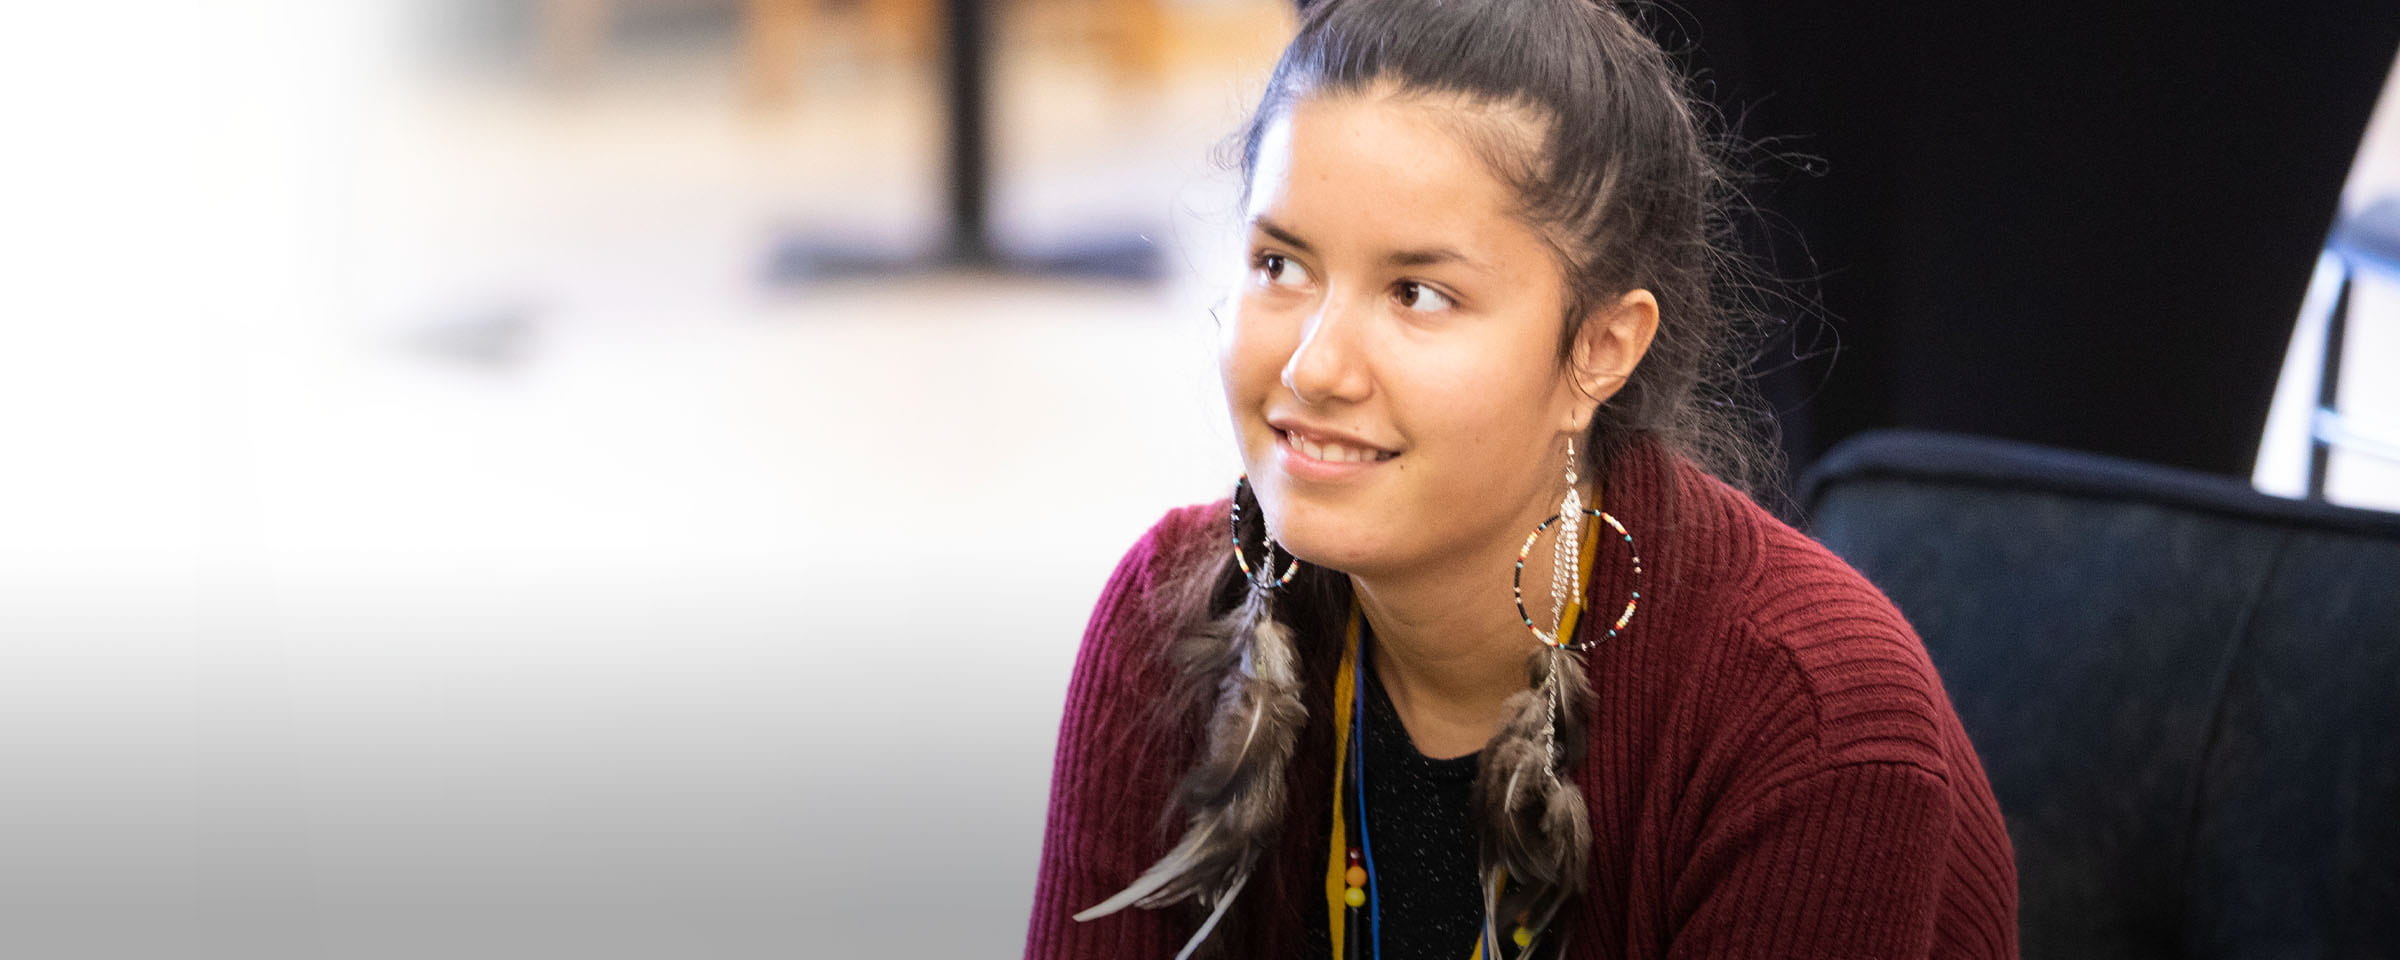 Young Indigenous woman in classroom